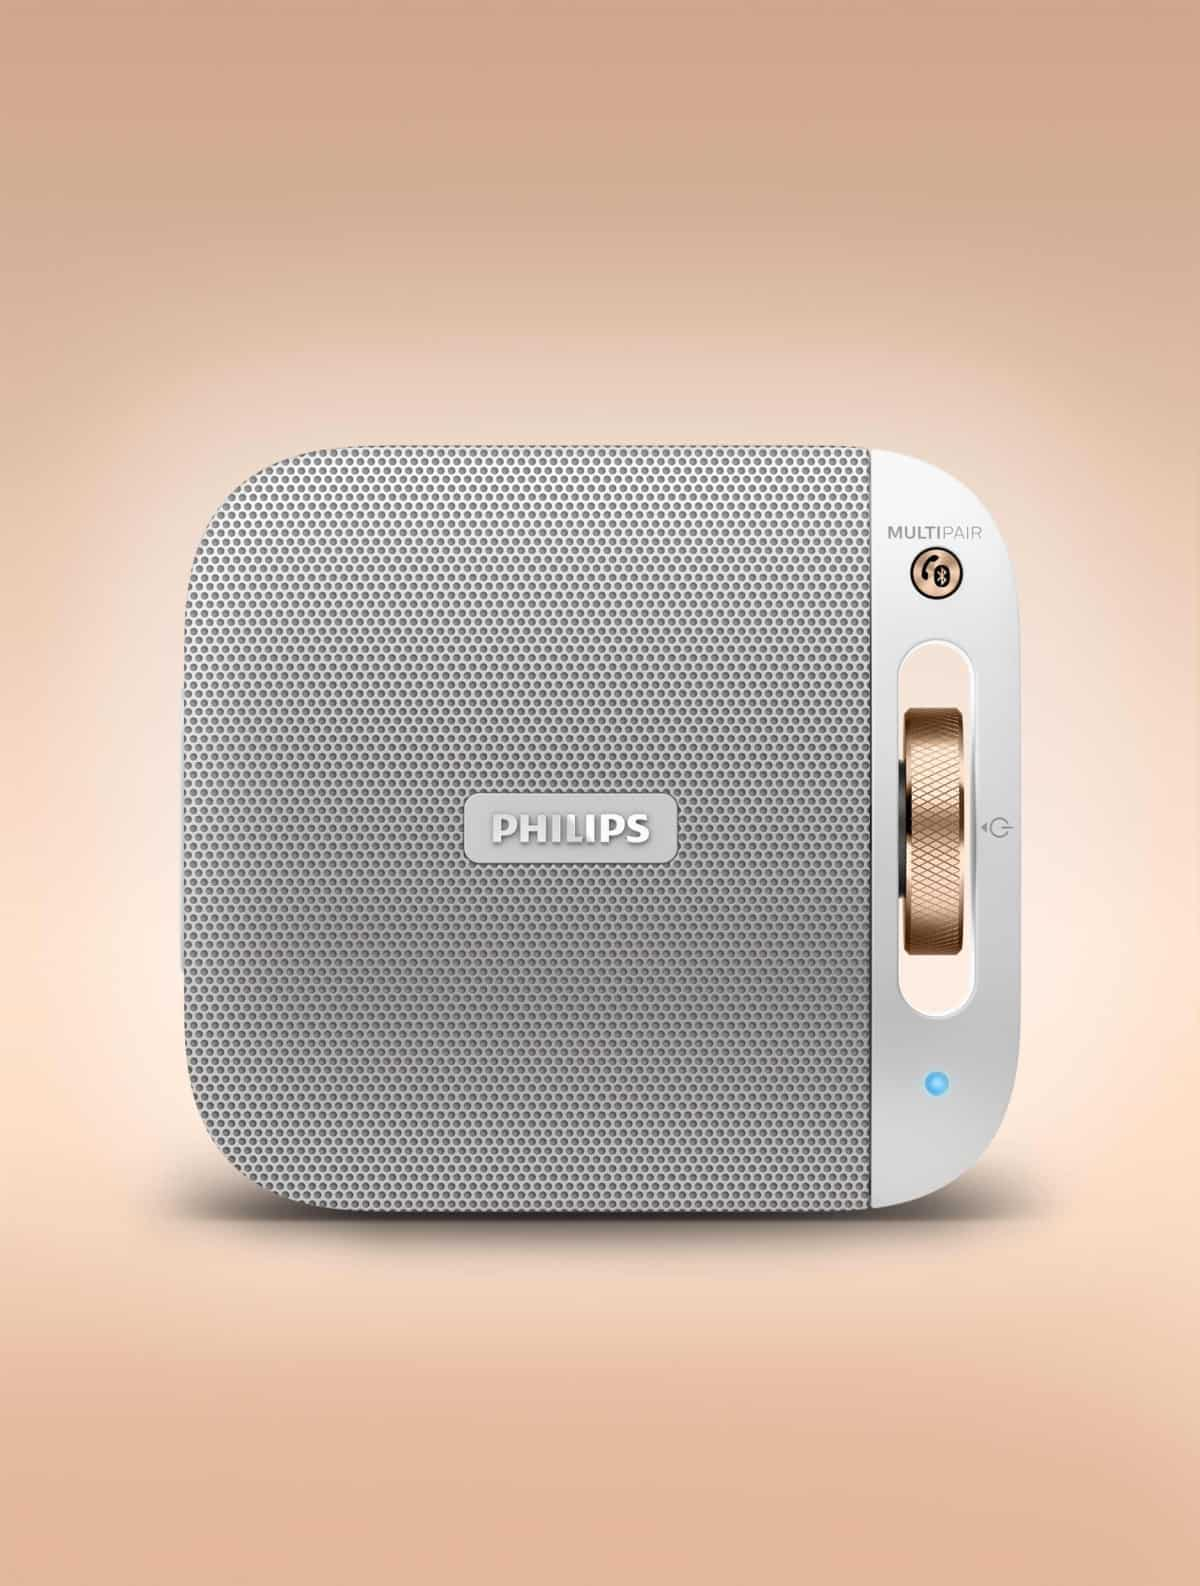 New Philips Portable Bluetooth Speaker BT2600